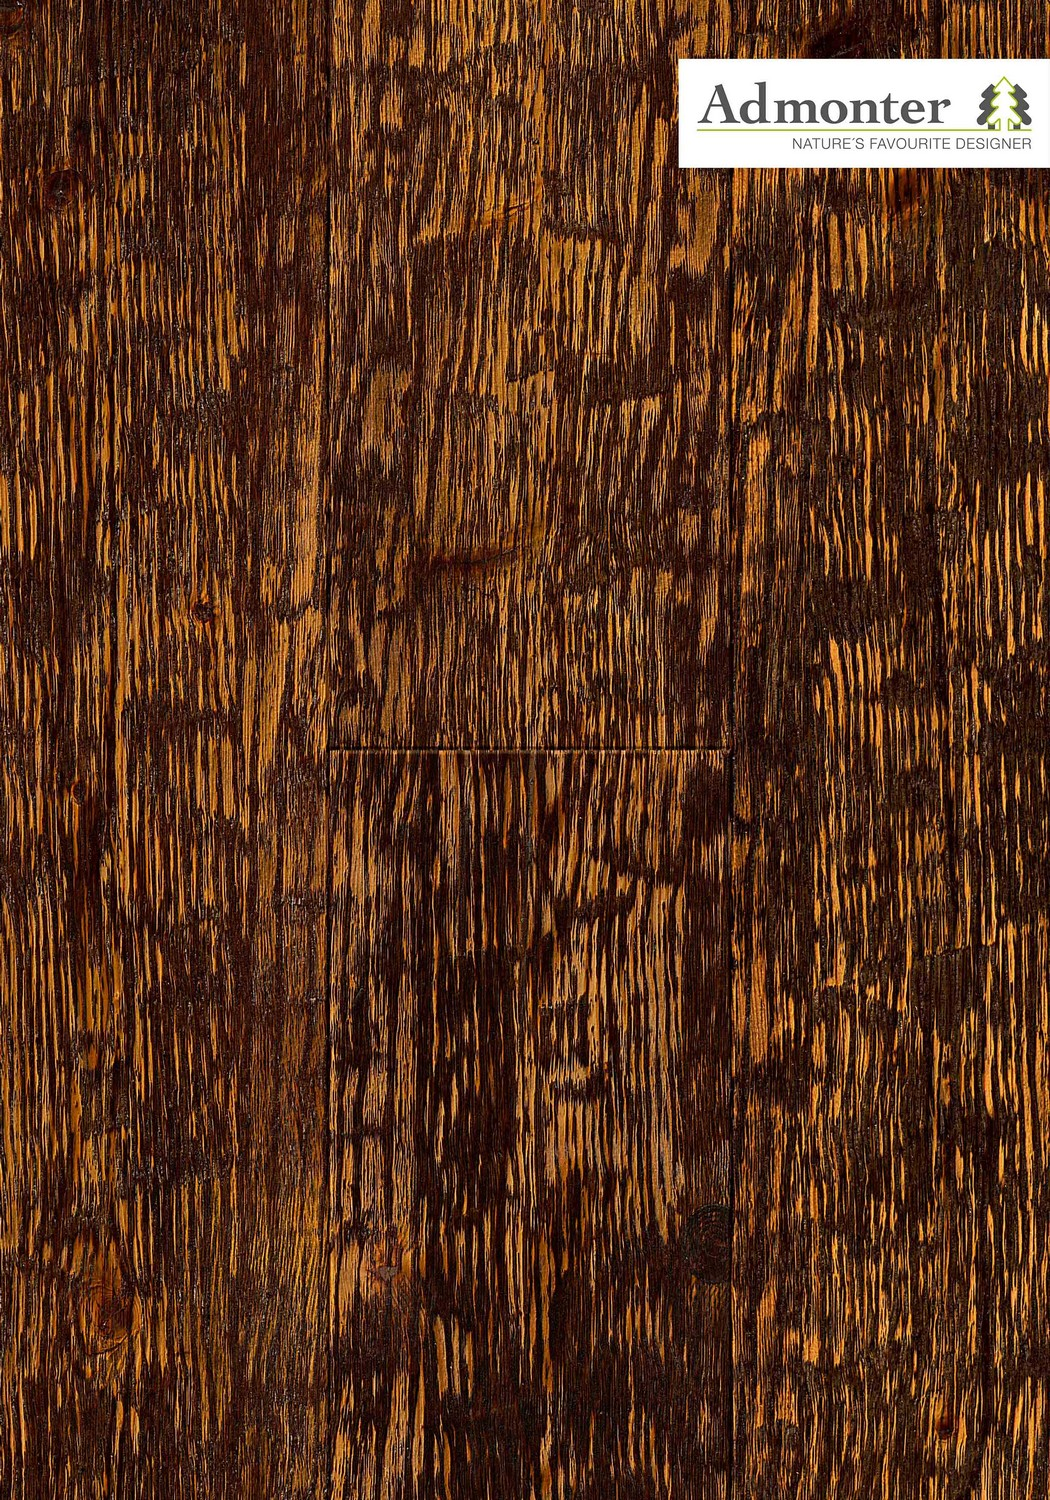 Паркетная доска Larch aged black robust rustic